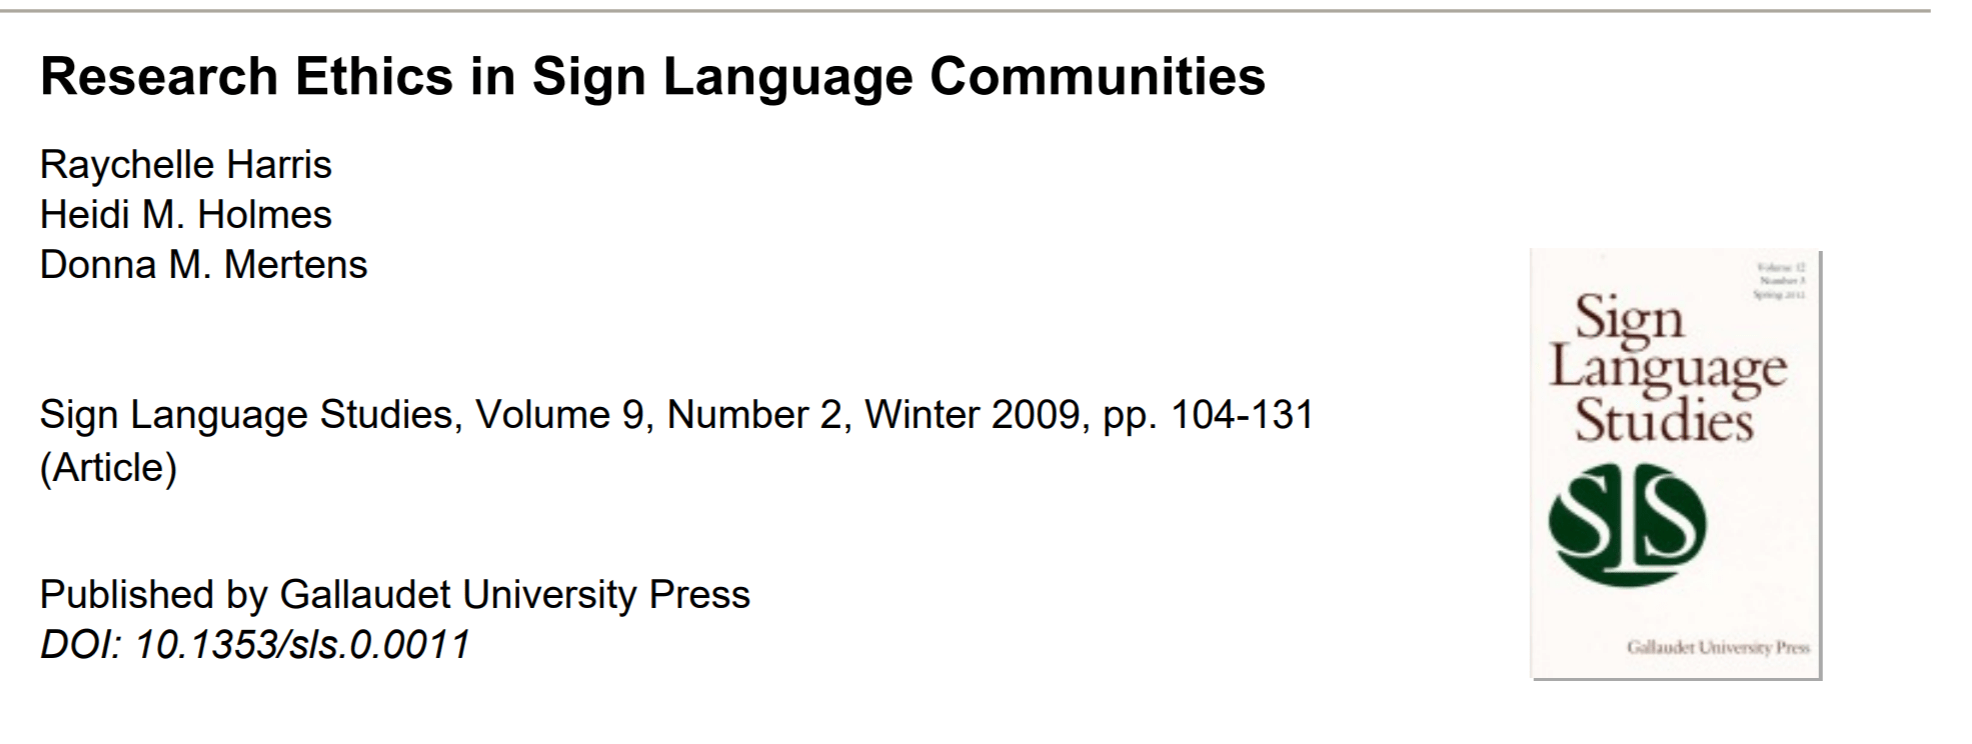 """Screen shot shows the title of the journal article entitled """"Ethics in Research with Sign Language Communities"""" with the names of the authors below it. A screenshot of the cover of the professional journal """"Sign Language Studies"""" is shown to the right."""